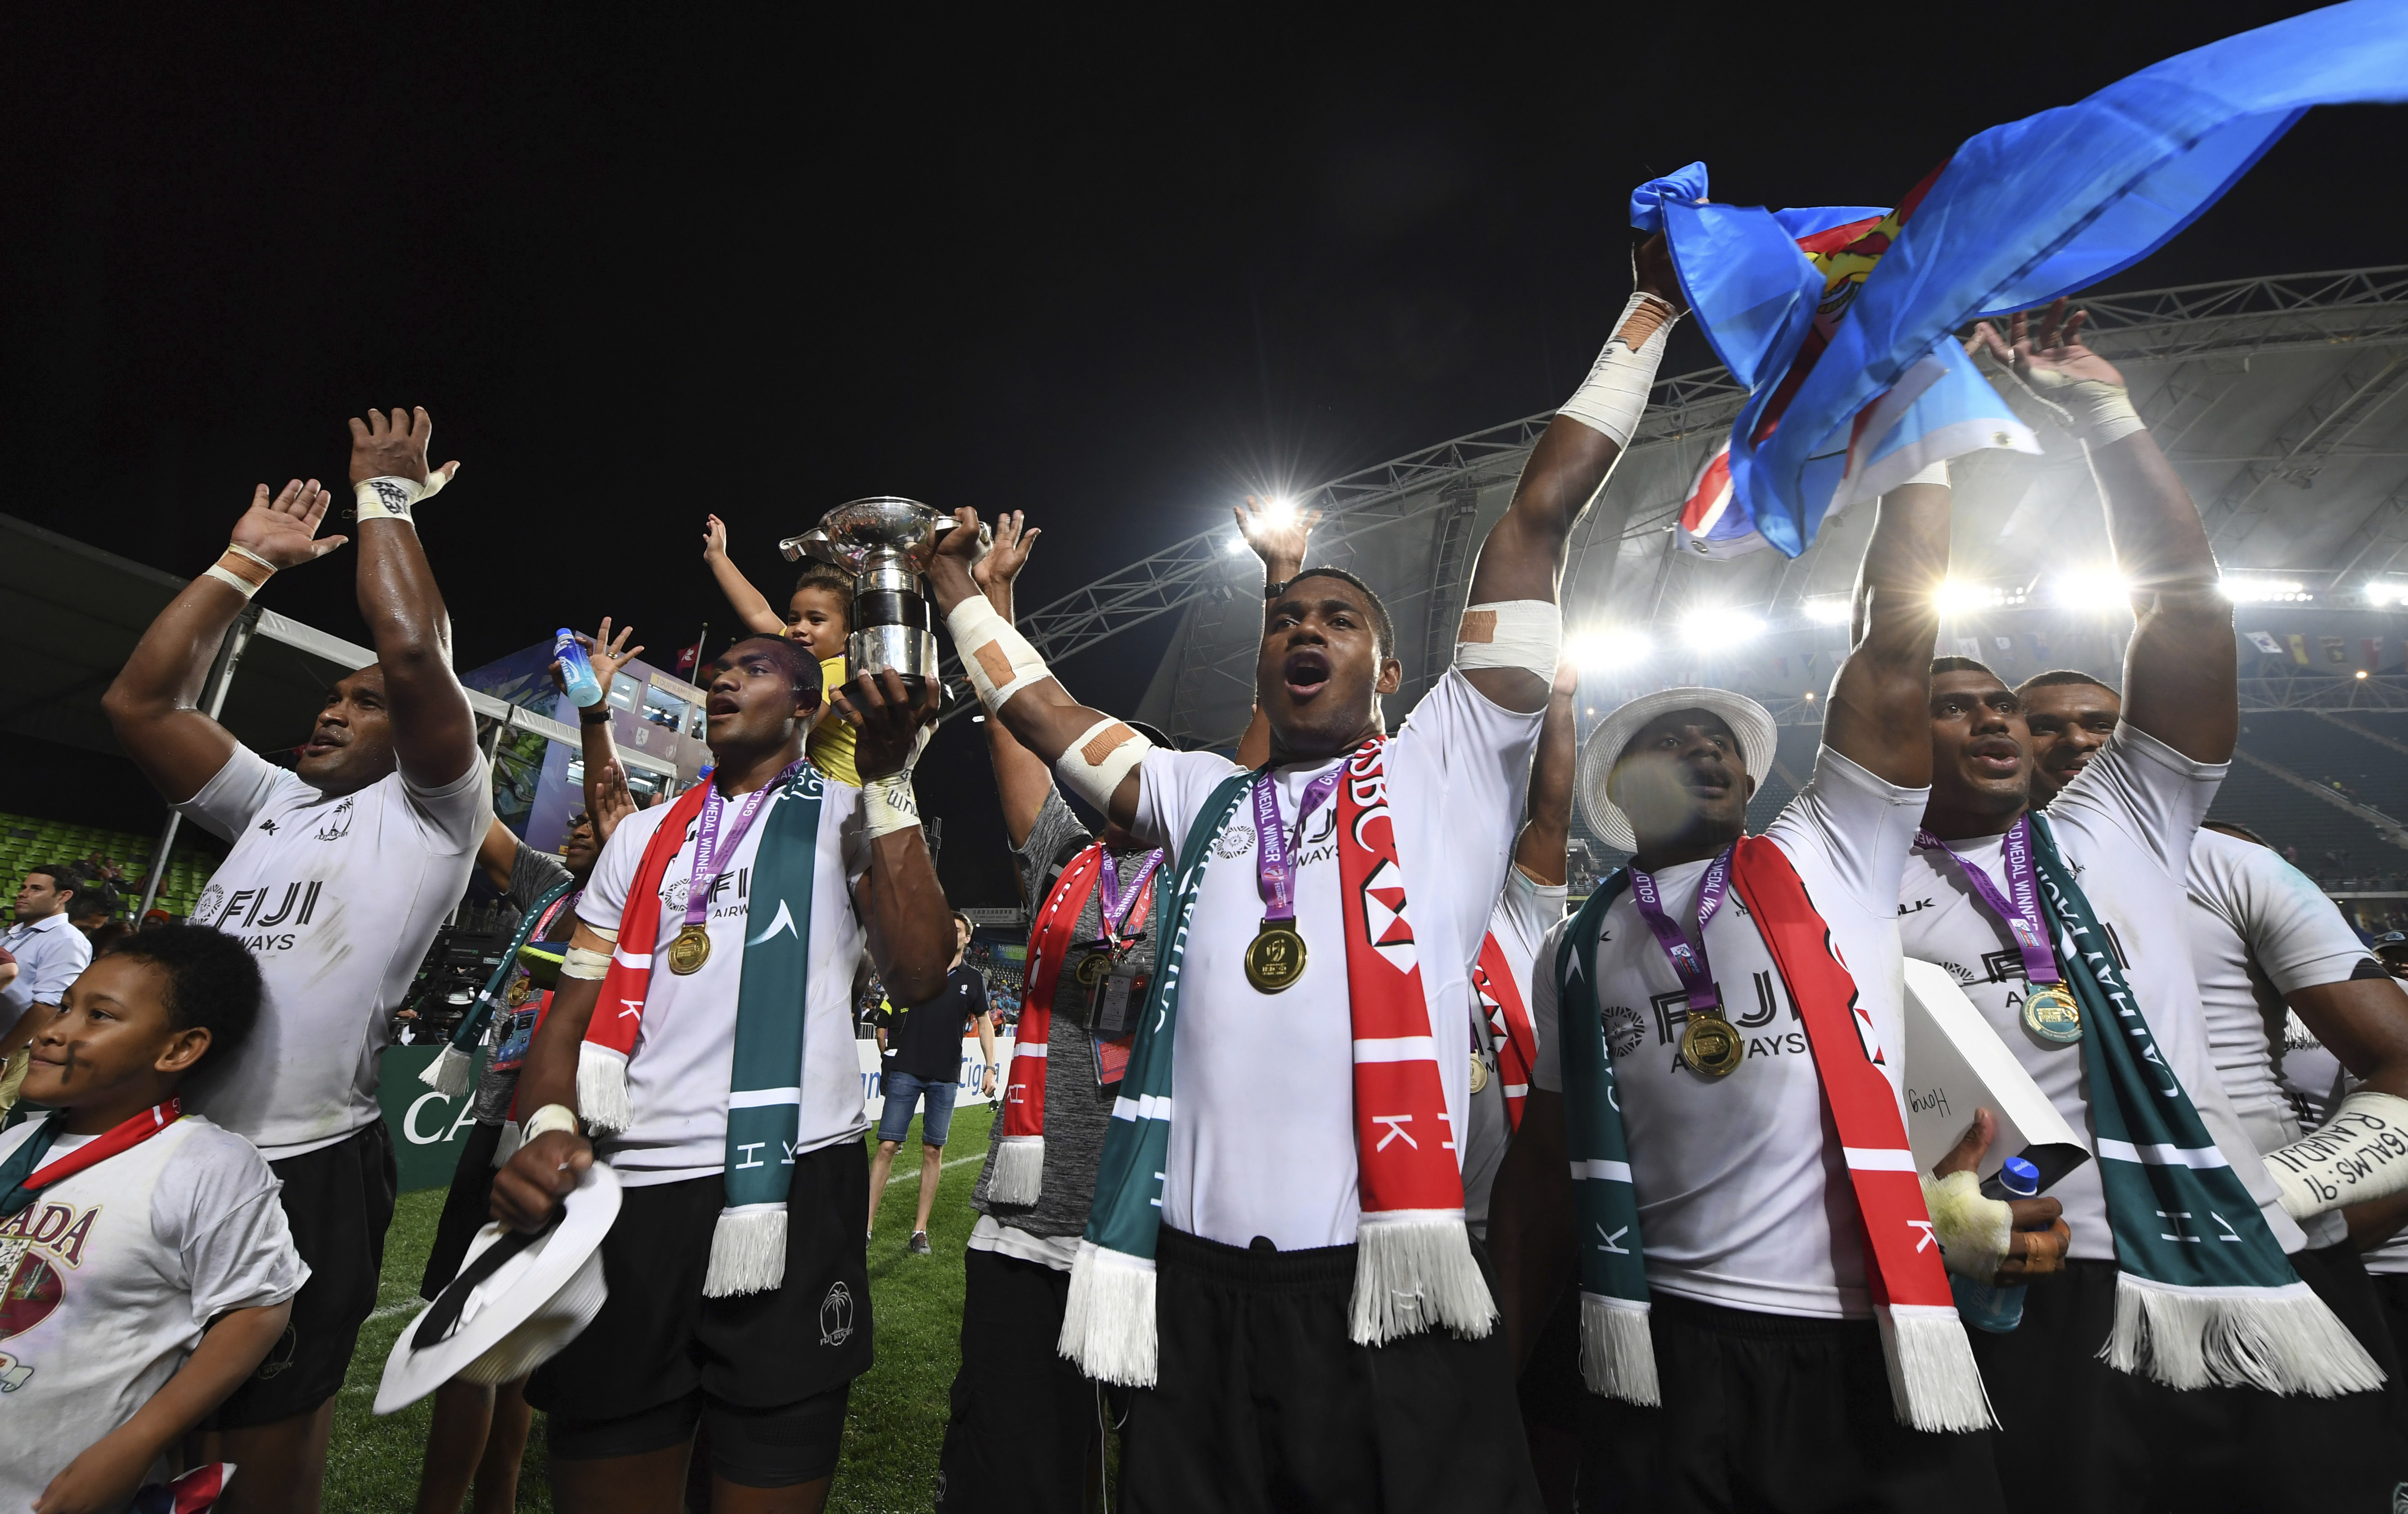 The Fiji rugby team celebrates after winning the final against South Africa at the Hong Kong Sevens rugby tournament in Hong Kong, Sunday, April 9. (AP Photo)